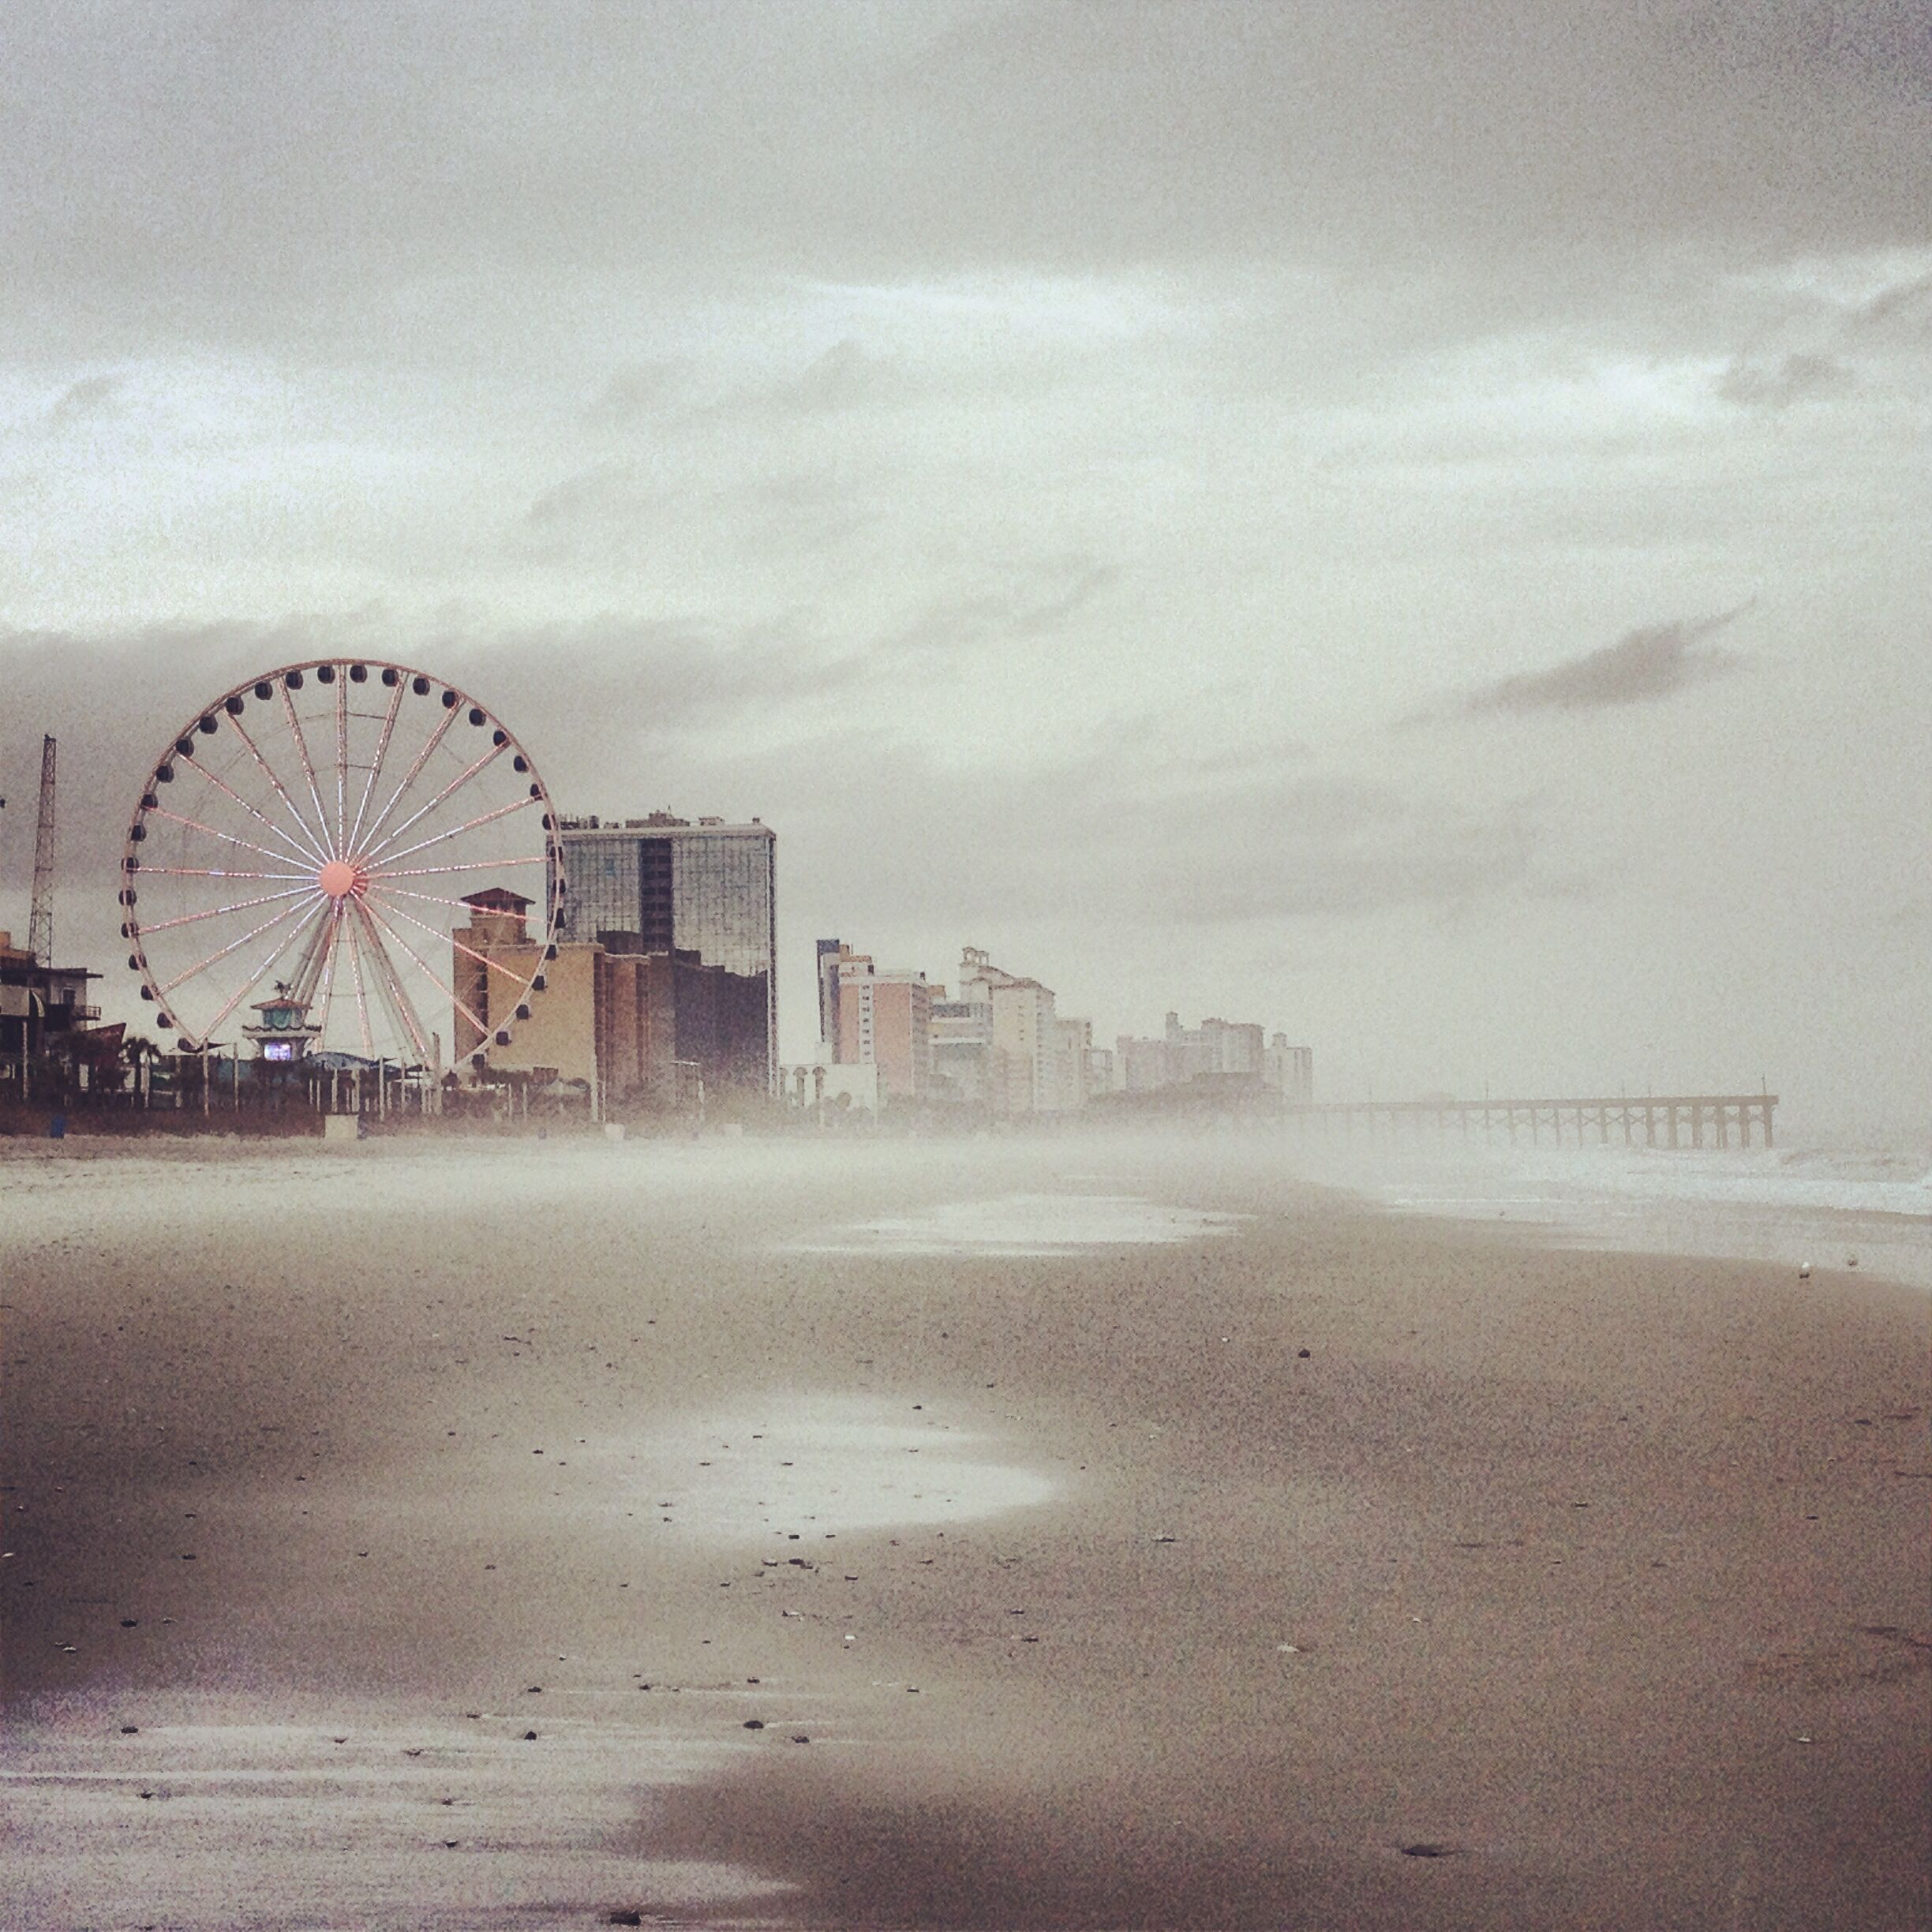 Places To Visit In Month Of December: Myrtle Beach In December In The Rain